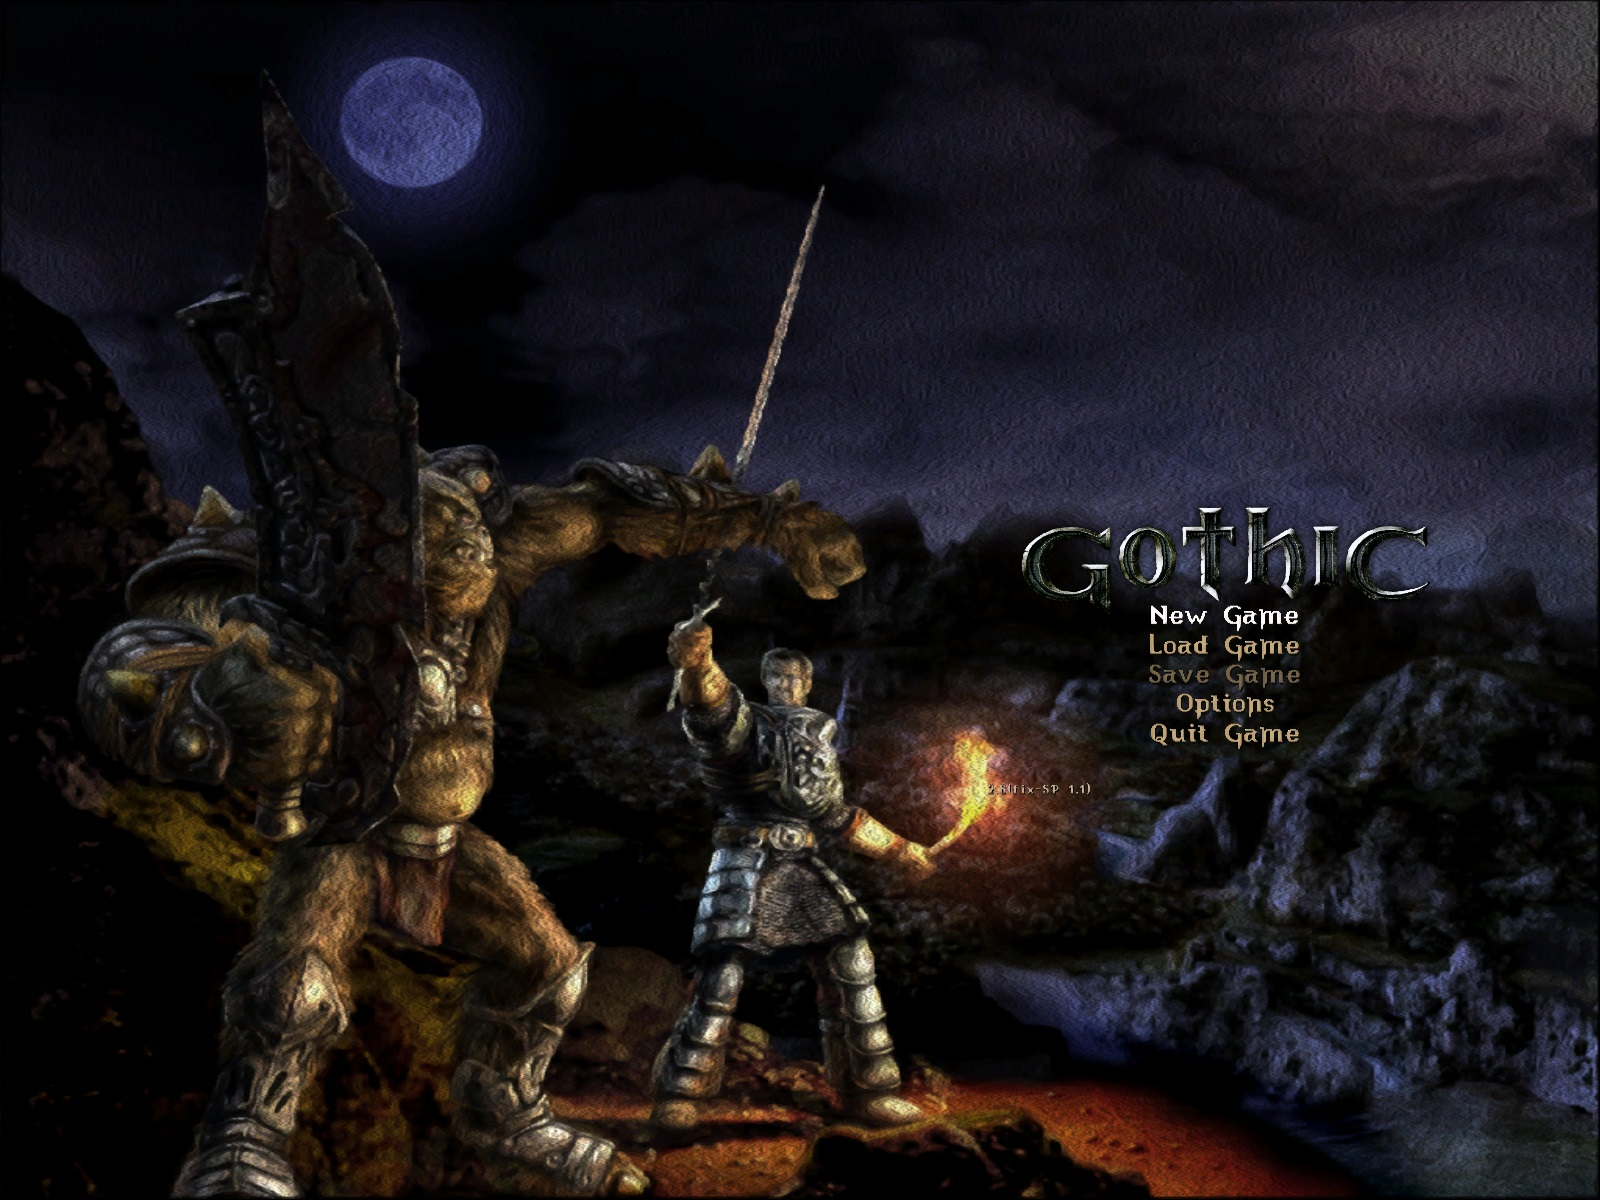 New Splashscreen image - Gothic 2 - Requiem mod for Gothic II - The Night of the Raven - Mod DB